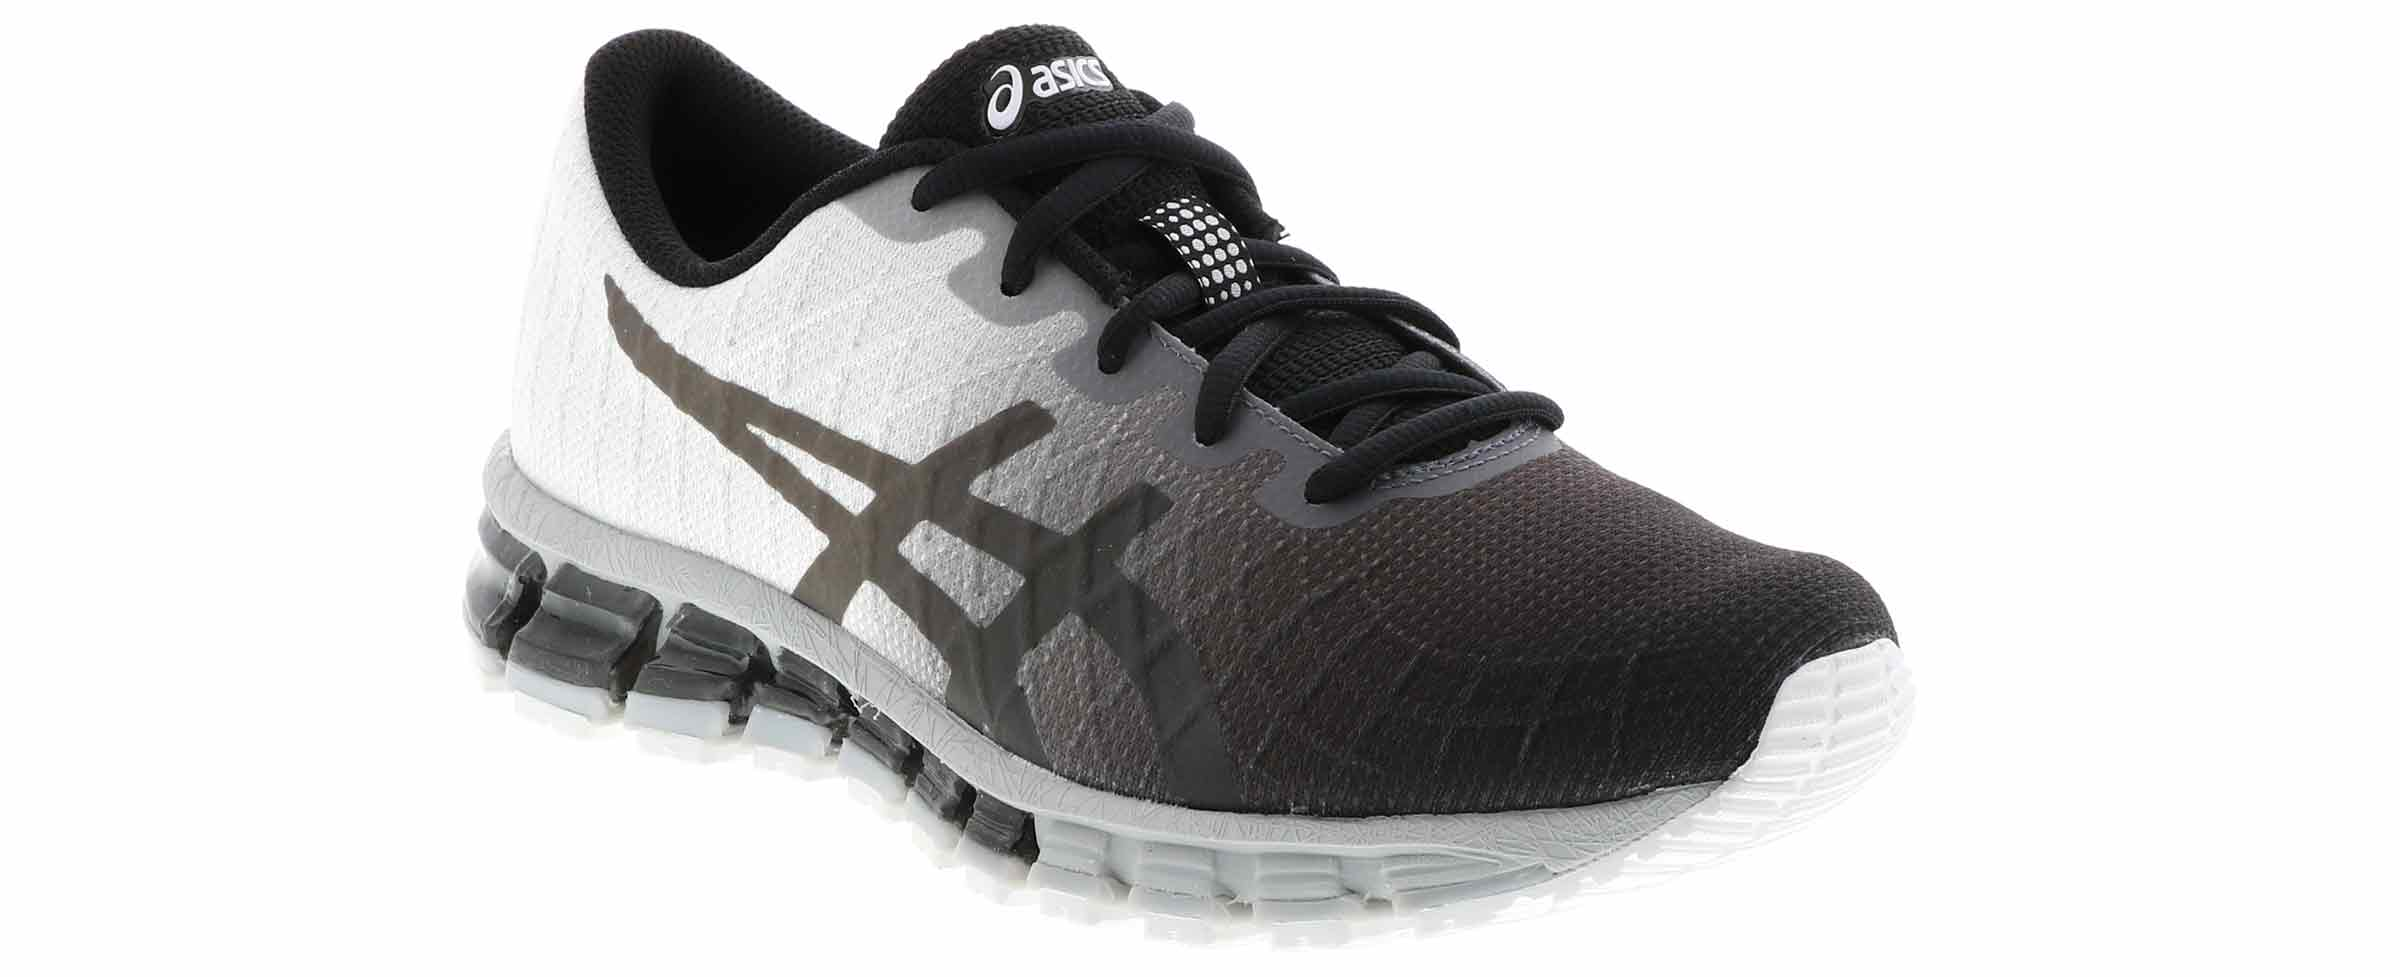 sports shoes cef78 0a3a6 Women's Asics Gel Quantum 180 4